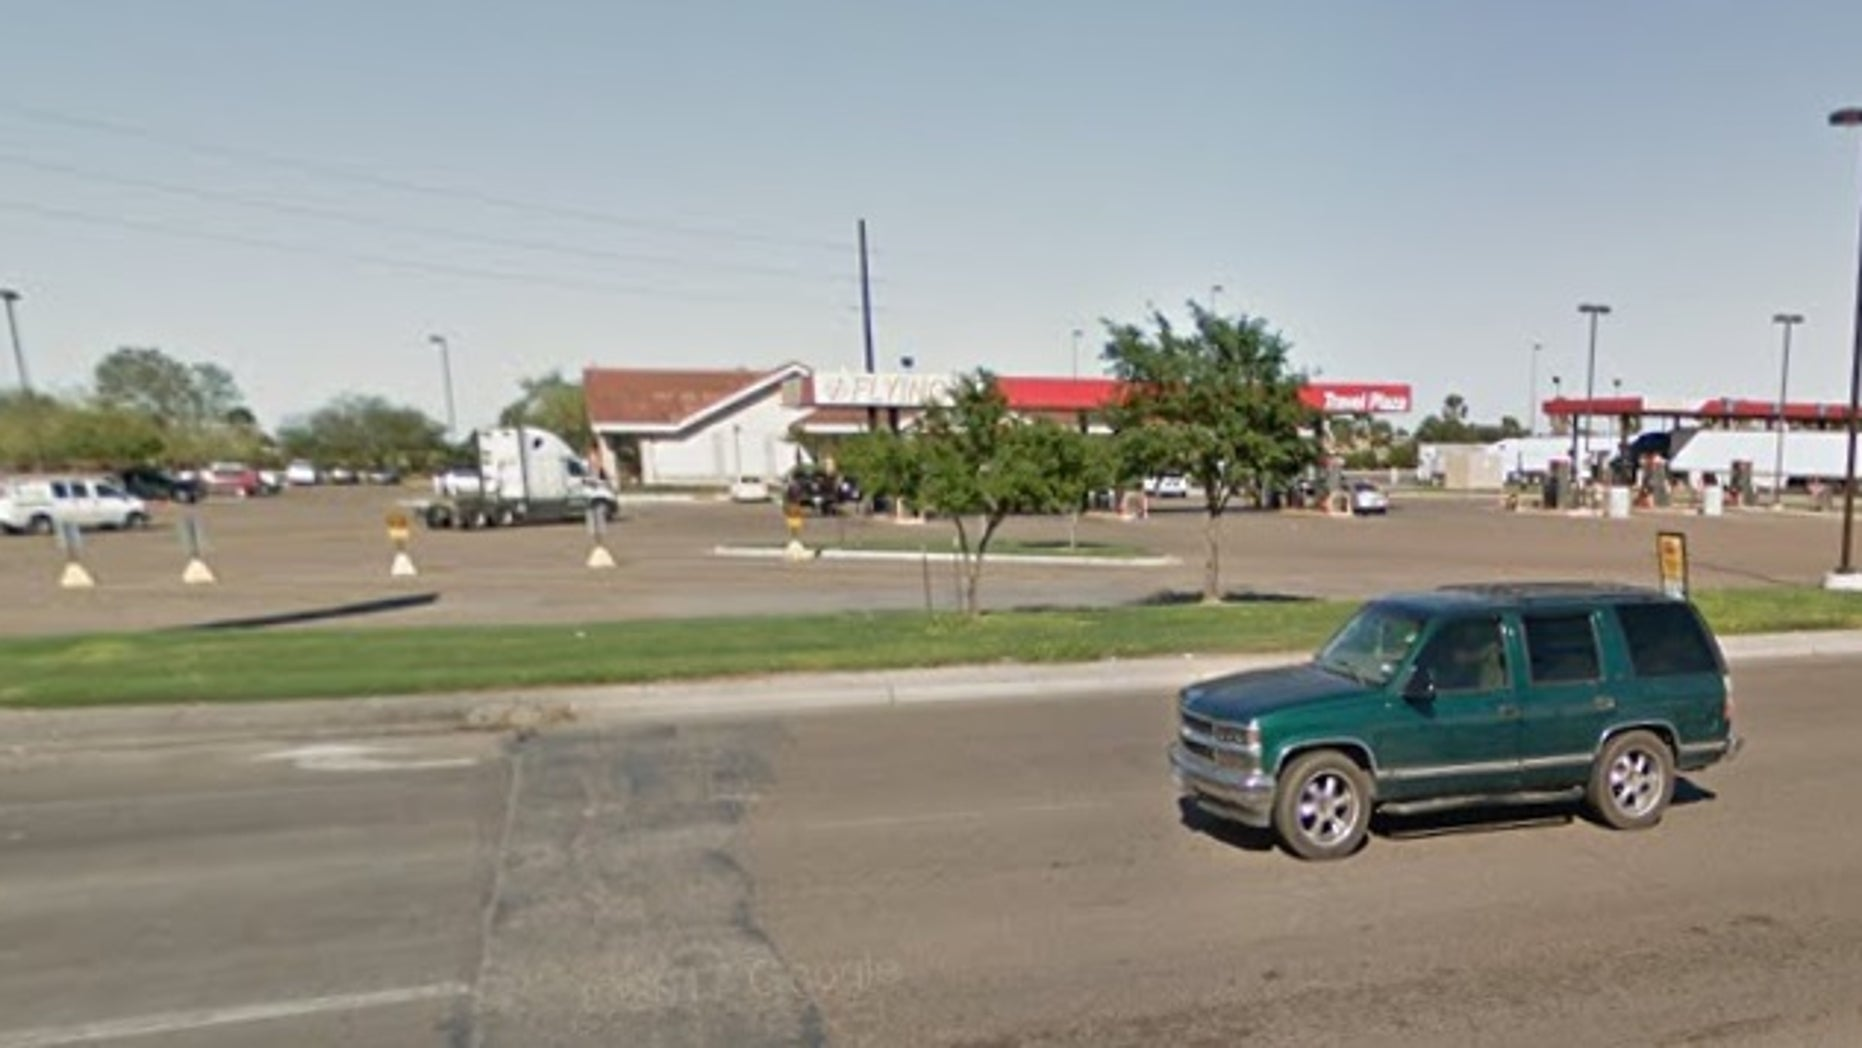 The truck was stopped at a gas station in Edinburg, Texas, not far from the Mexico border.